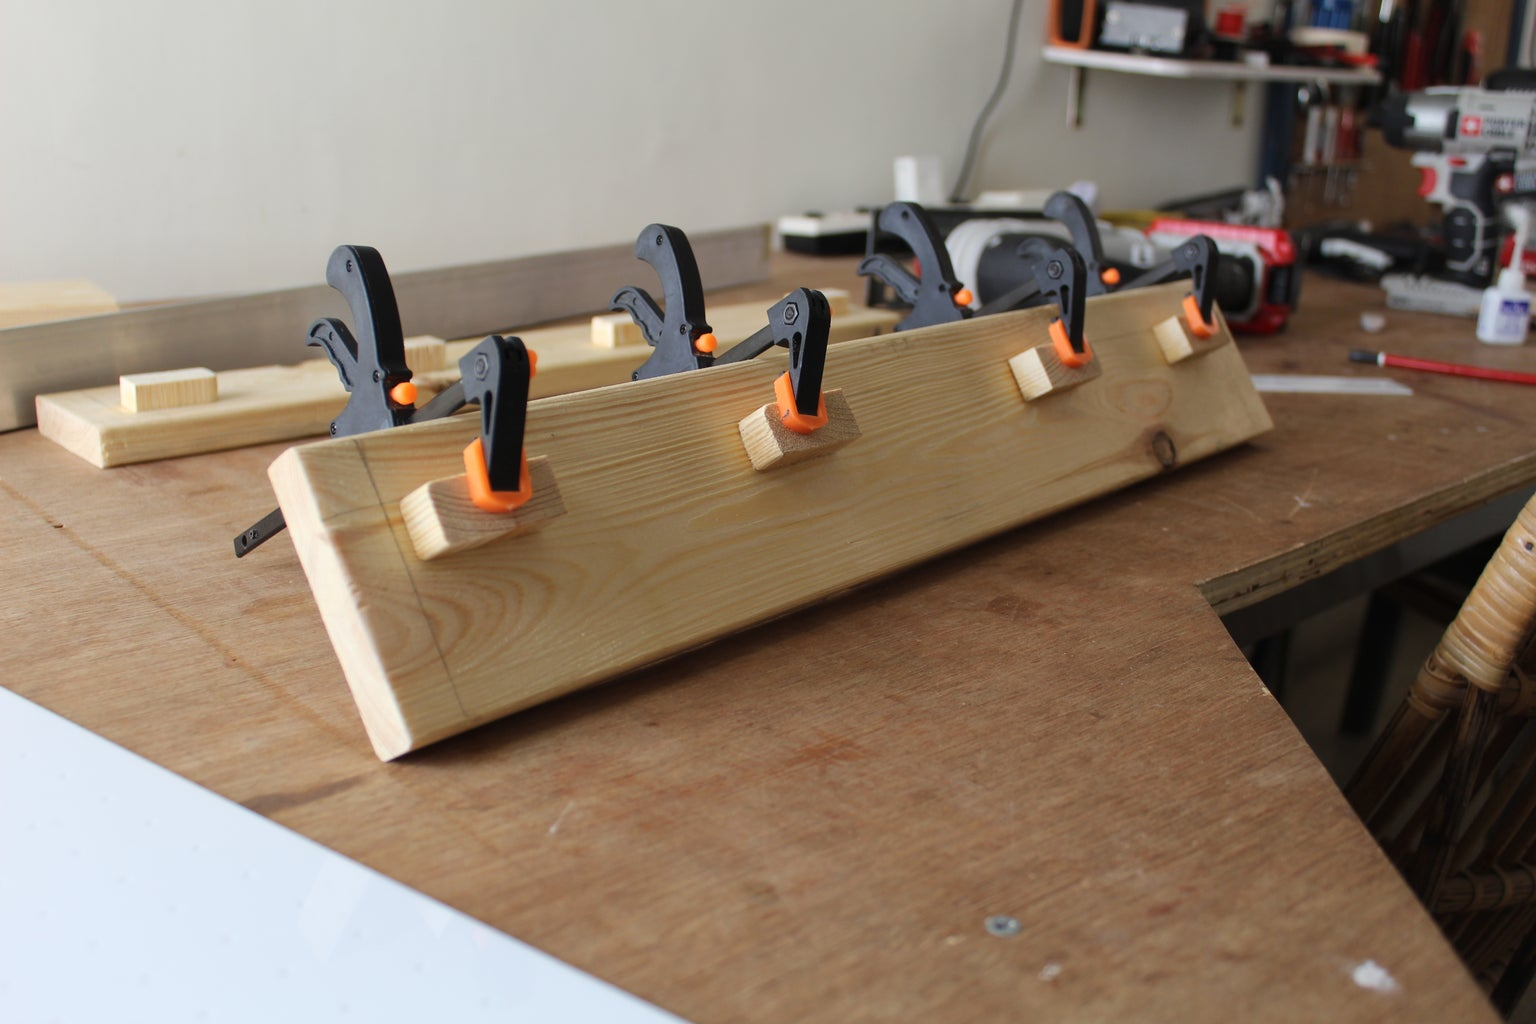 Gluing the Spacers